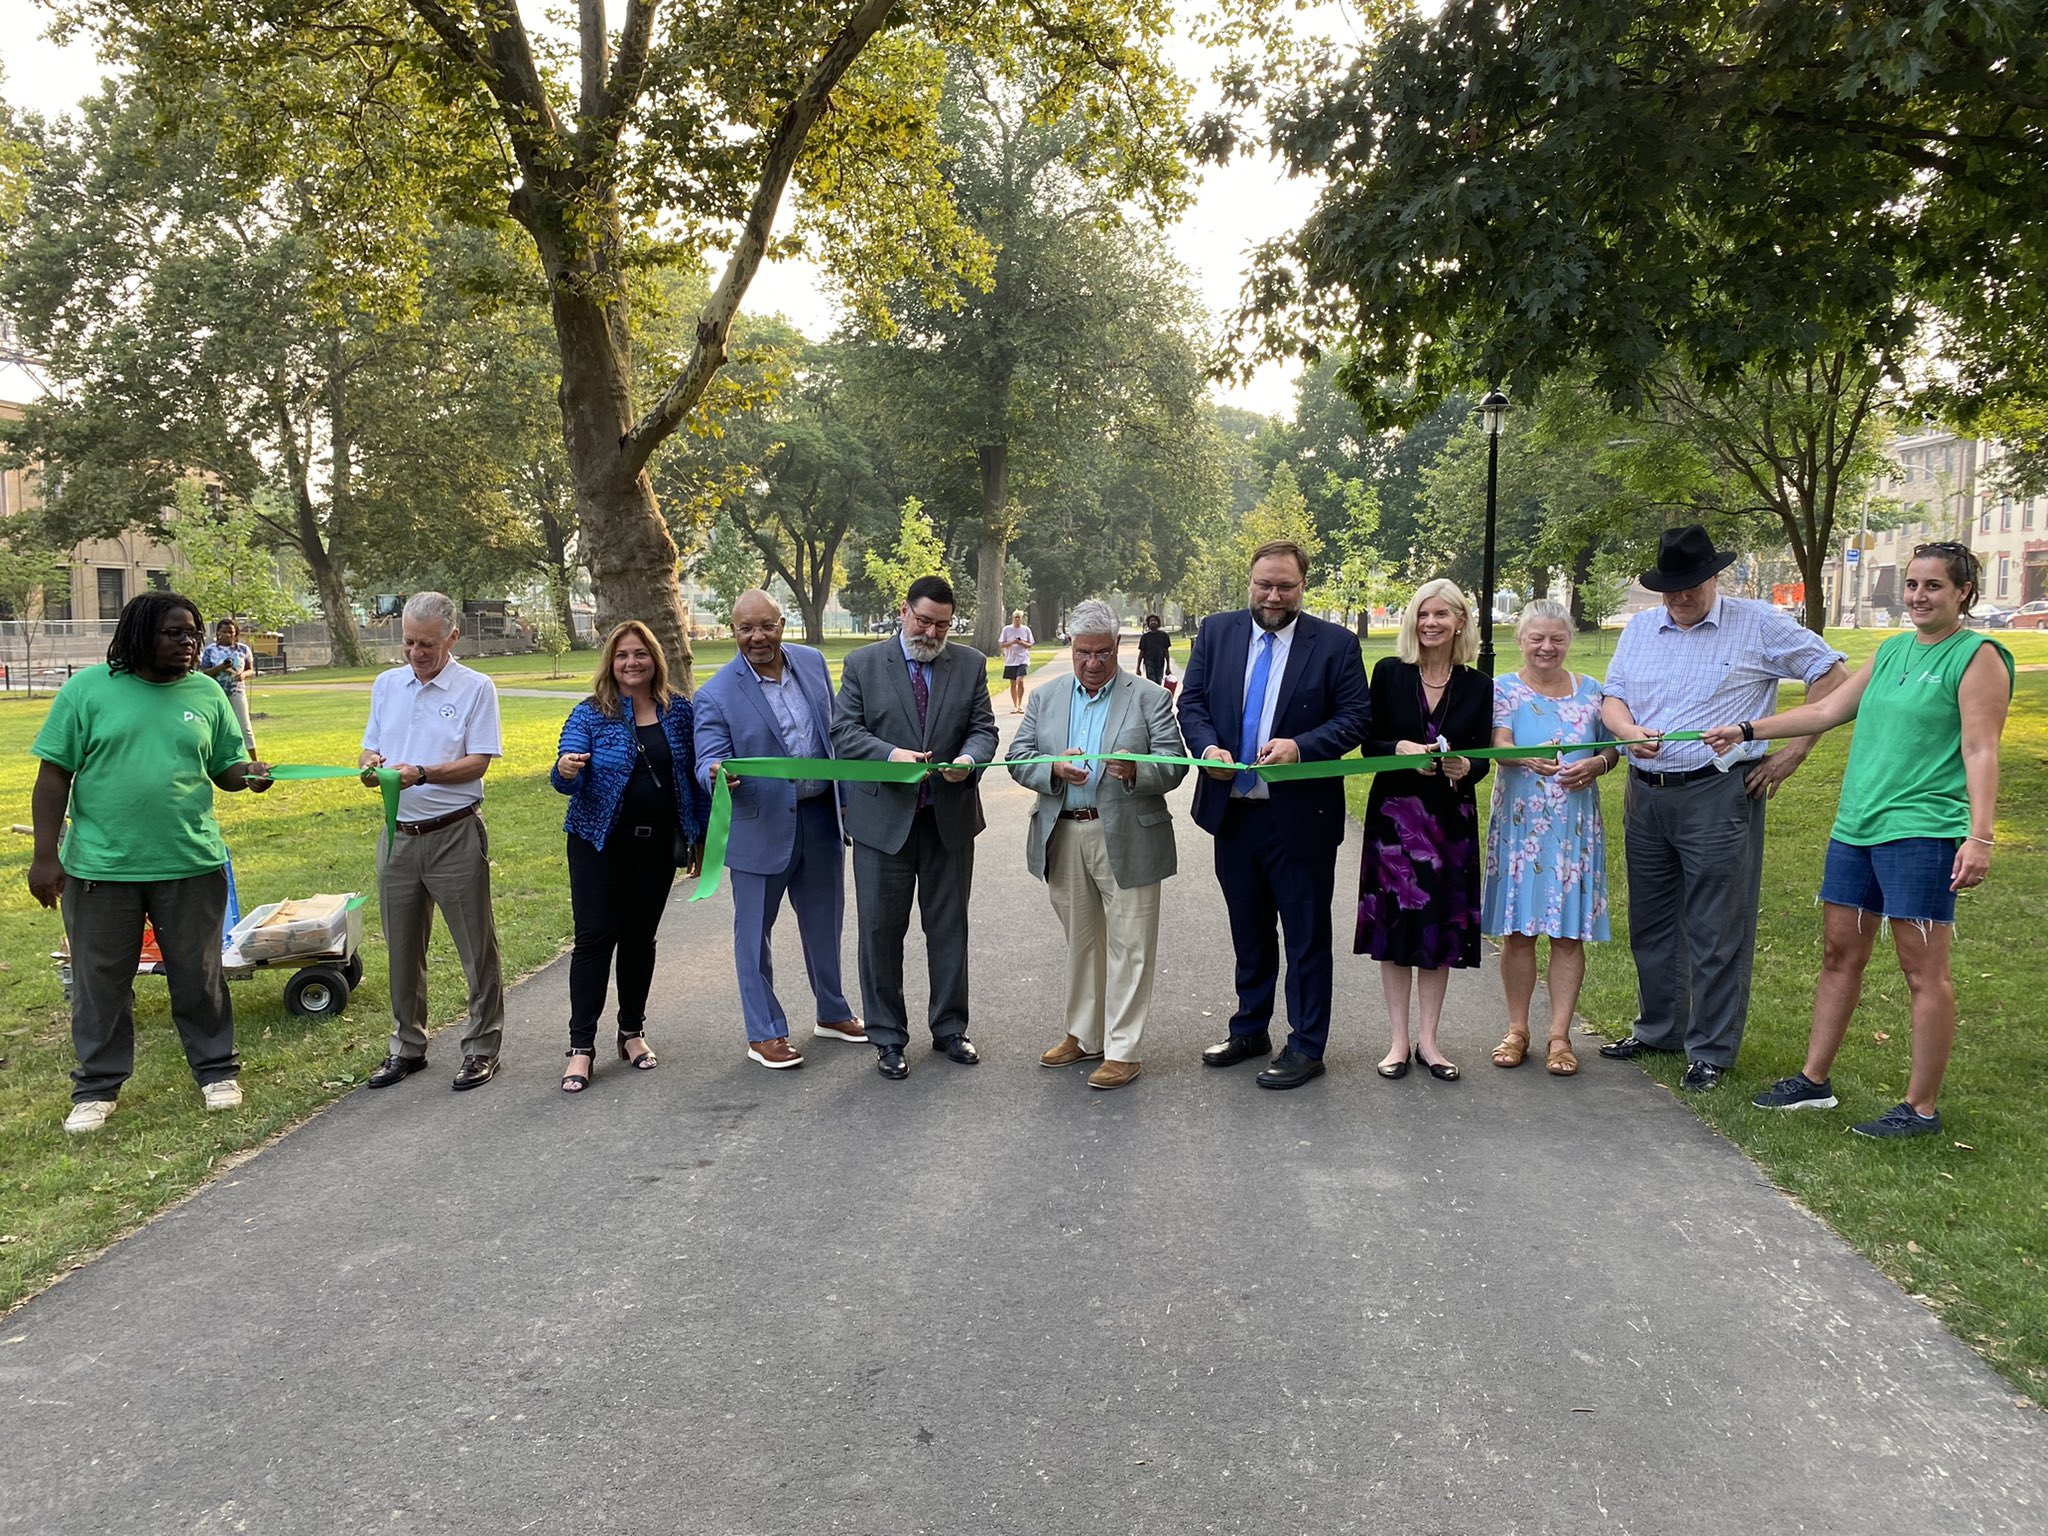 Ribbon Cutting Event at Allegheny Commons Park